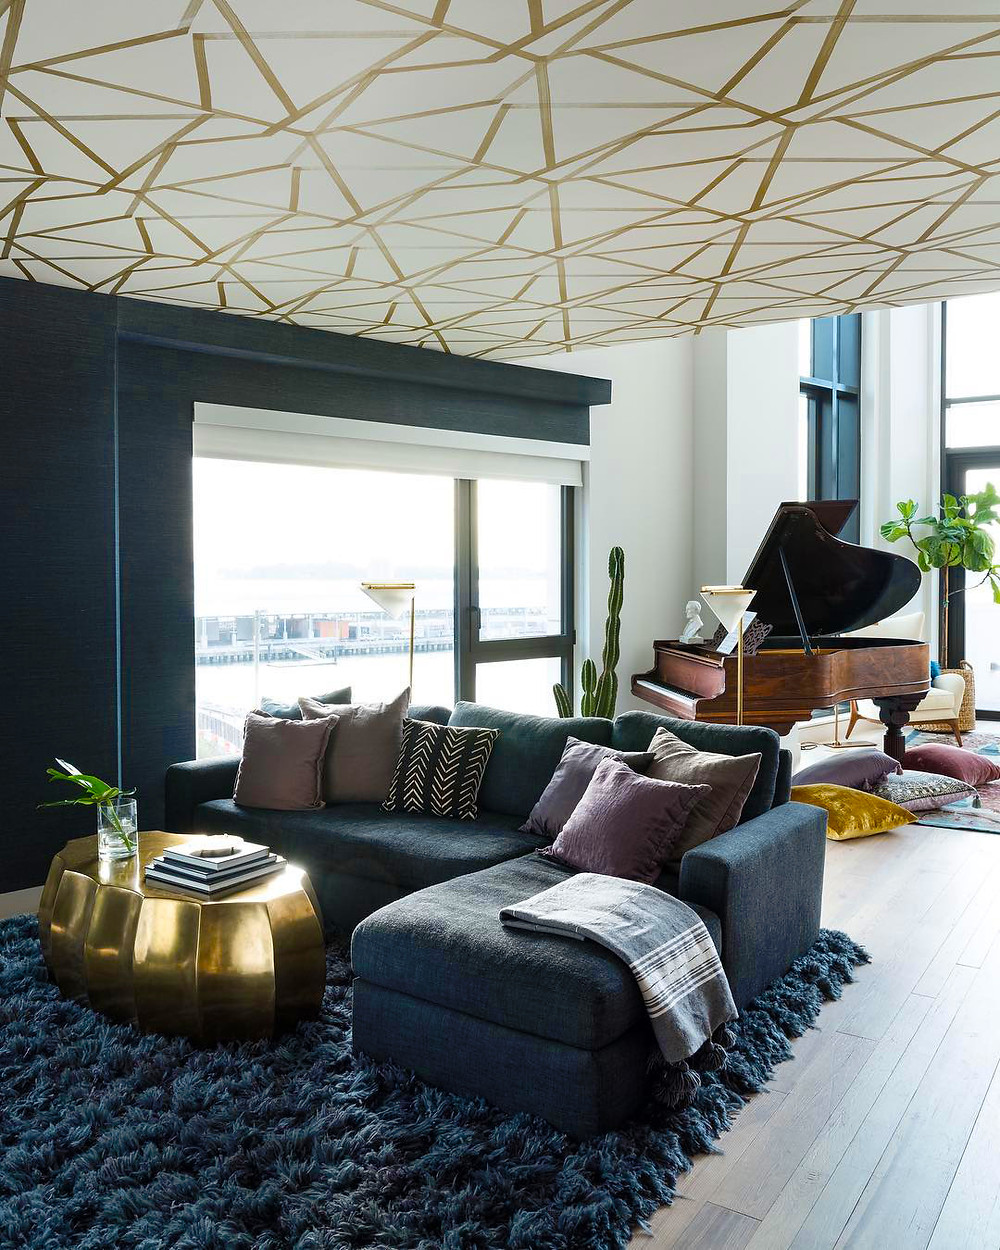 luxury living room with blue shag rug, blue sofa, and golden accent touches